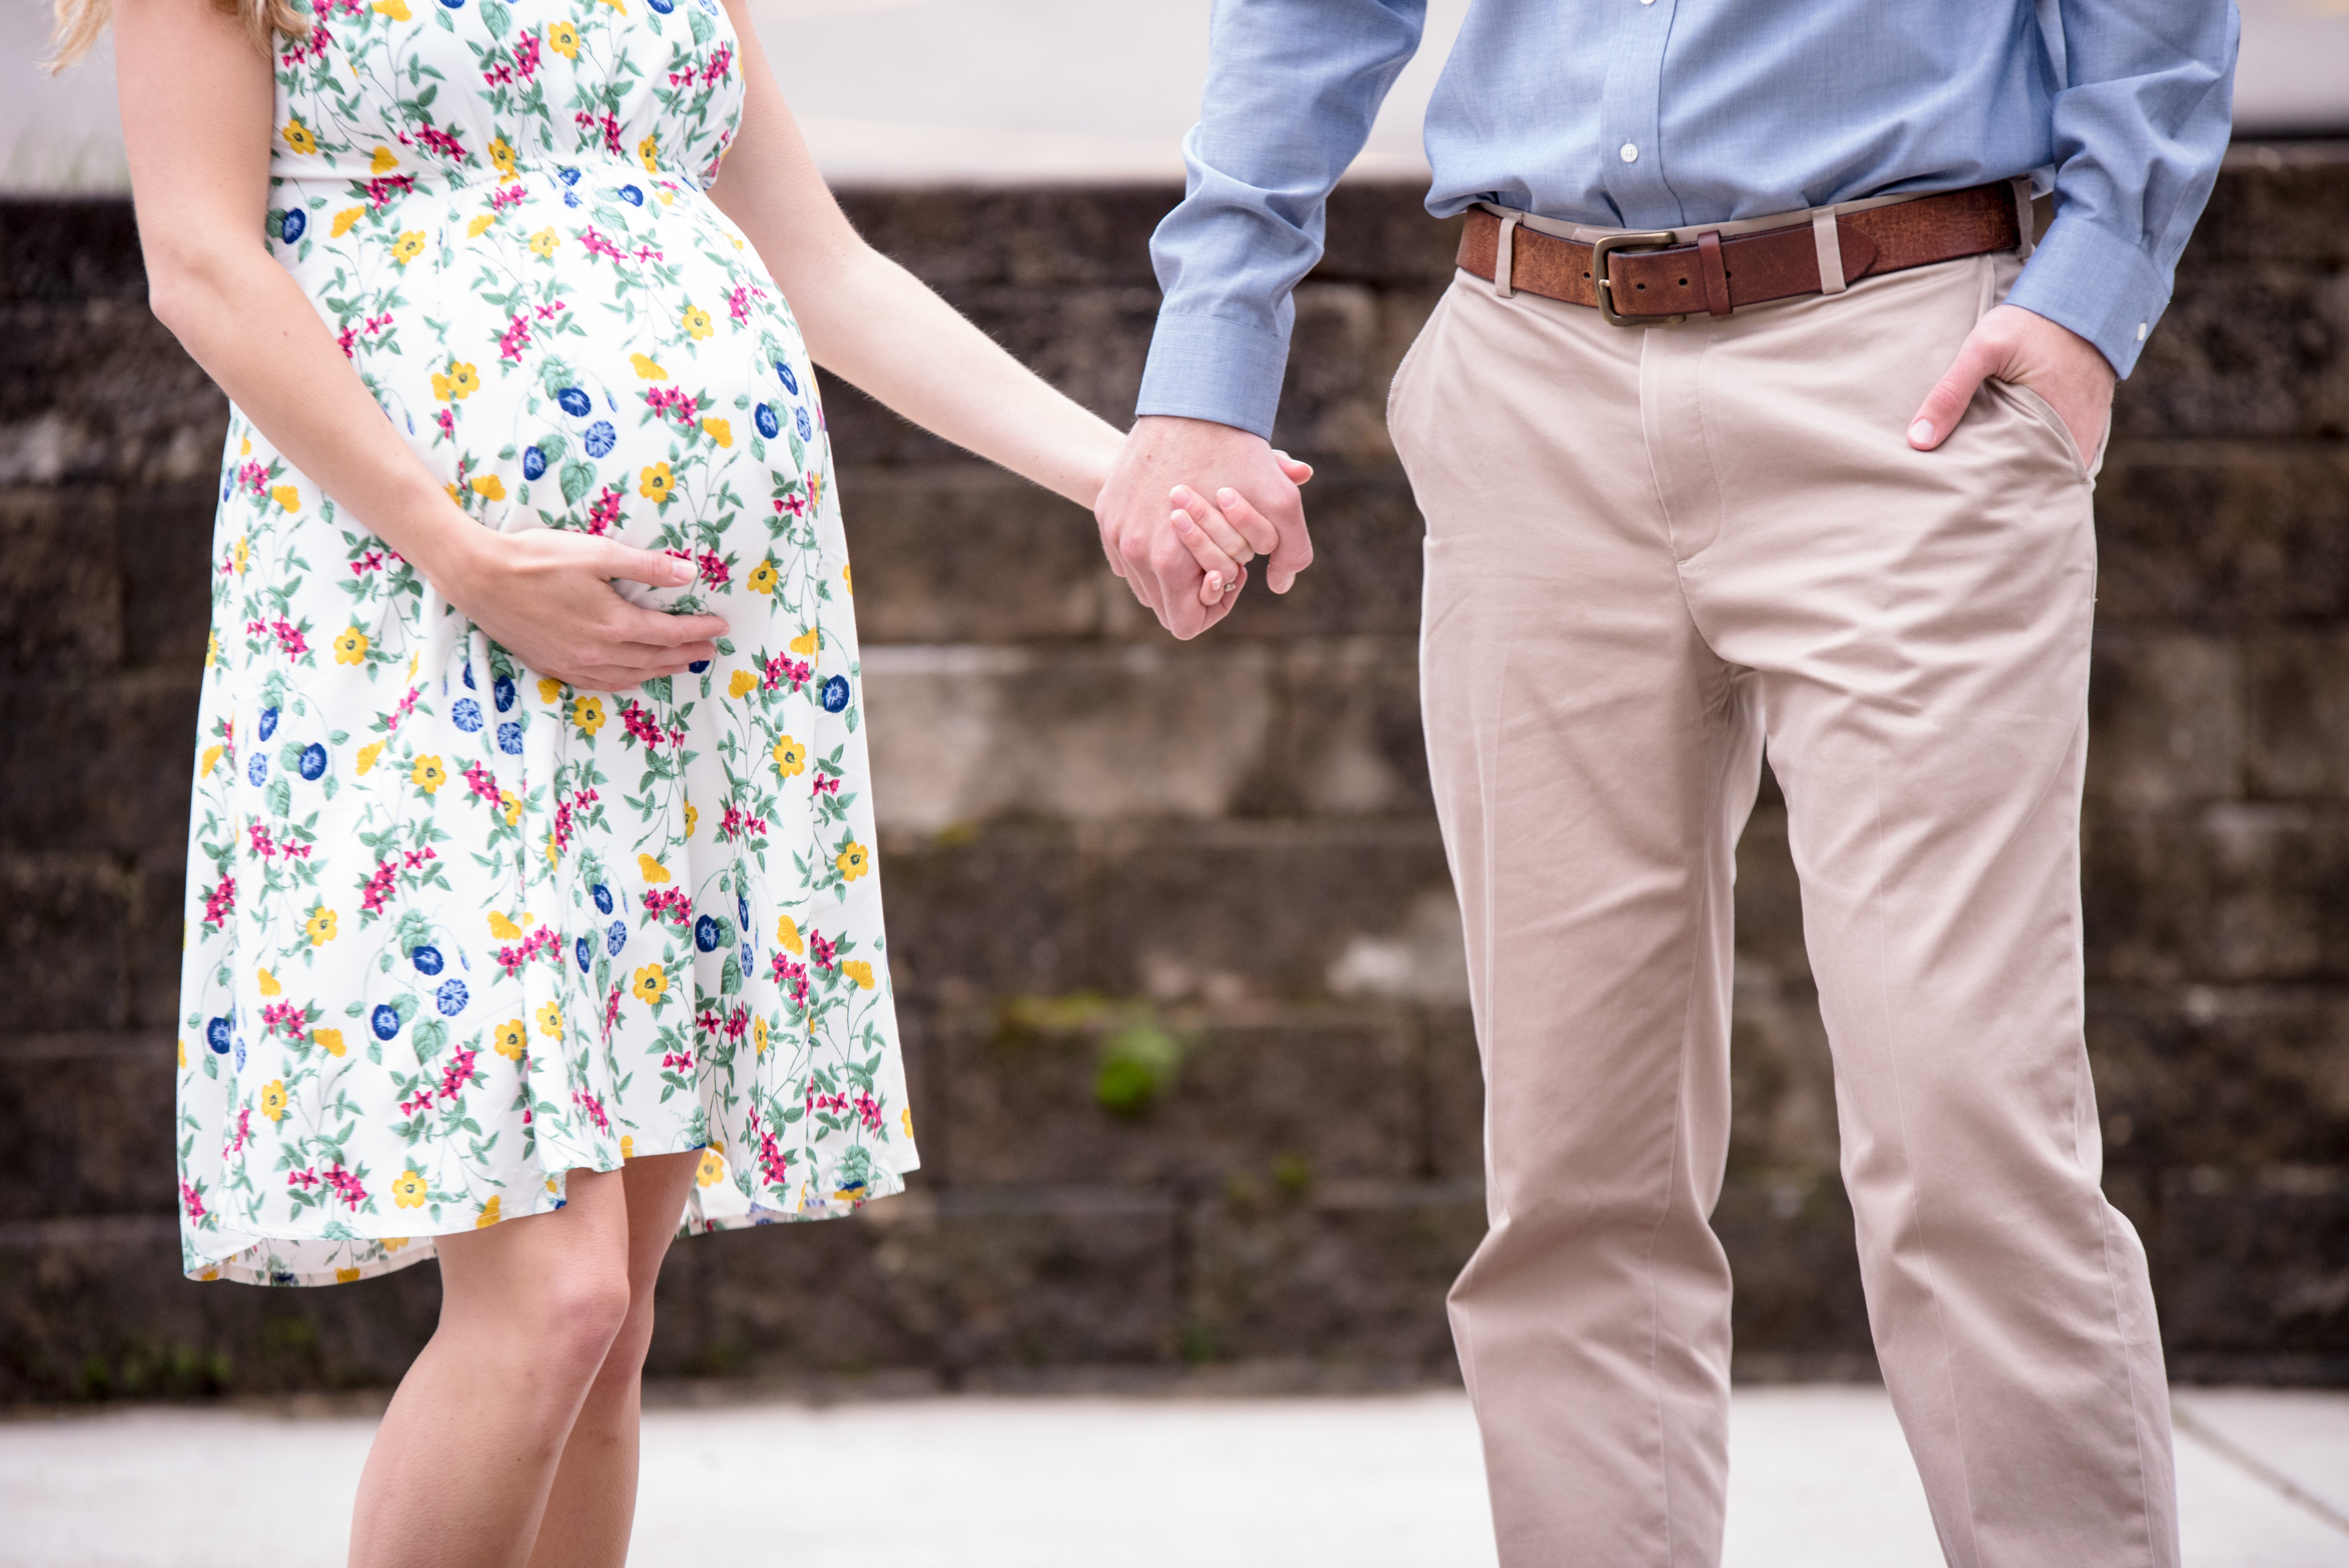 Pregnancy, also known as gestation, is the time during which one or more offspring develops inside a woman.